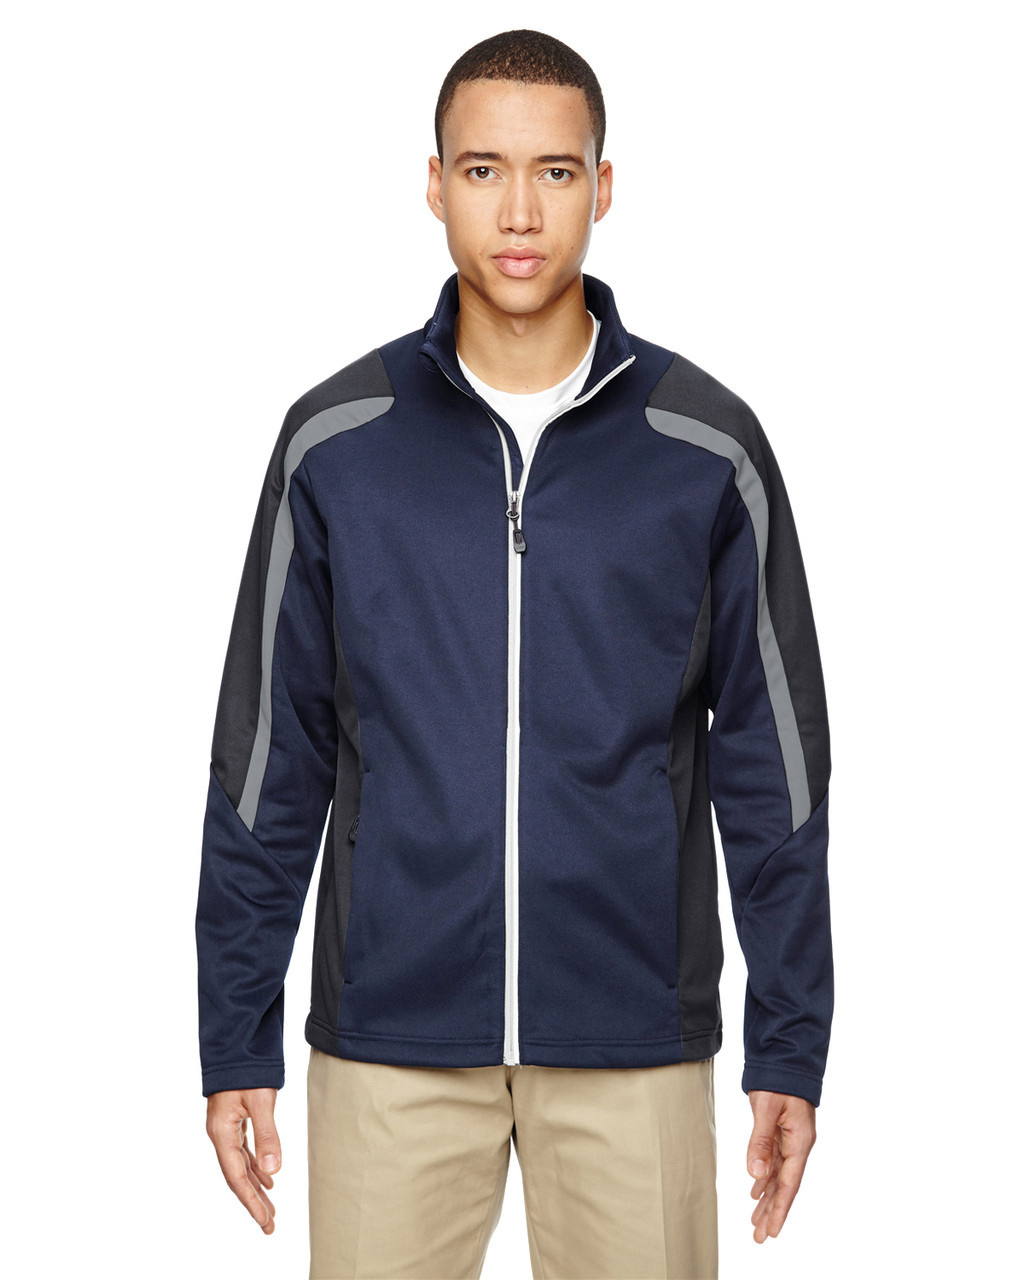 Classic Navy - 88201 North End Men's Strike Colorblock Fleece Jacket | Blankclothing.ca